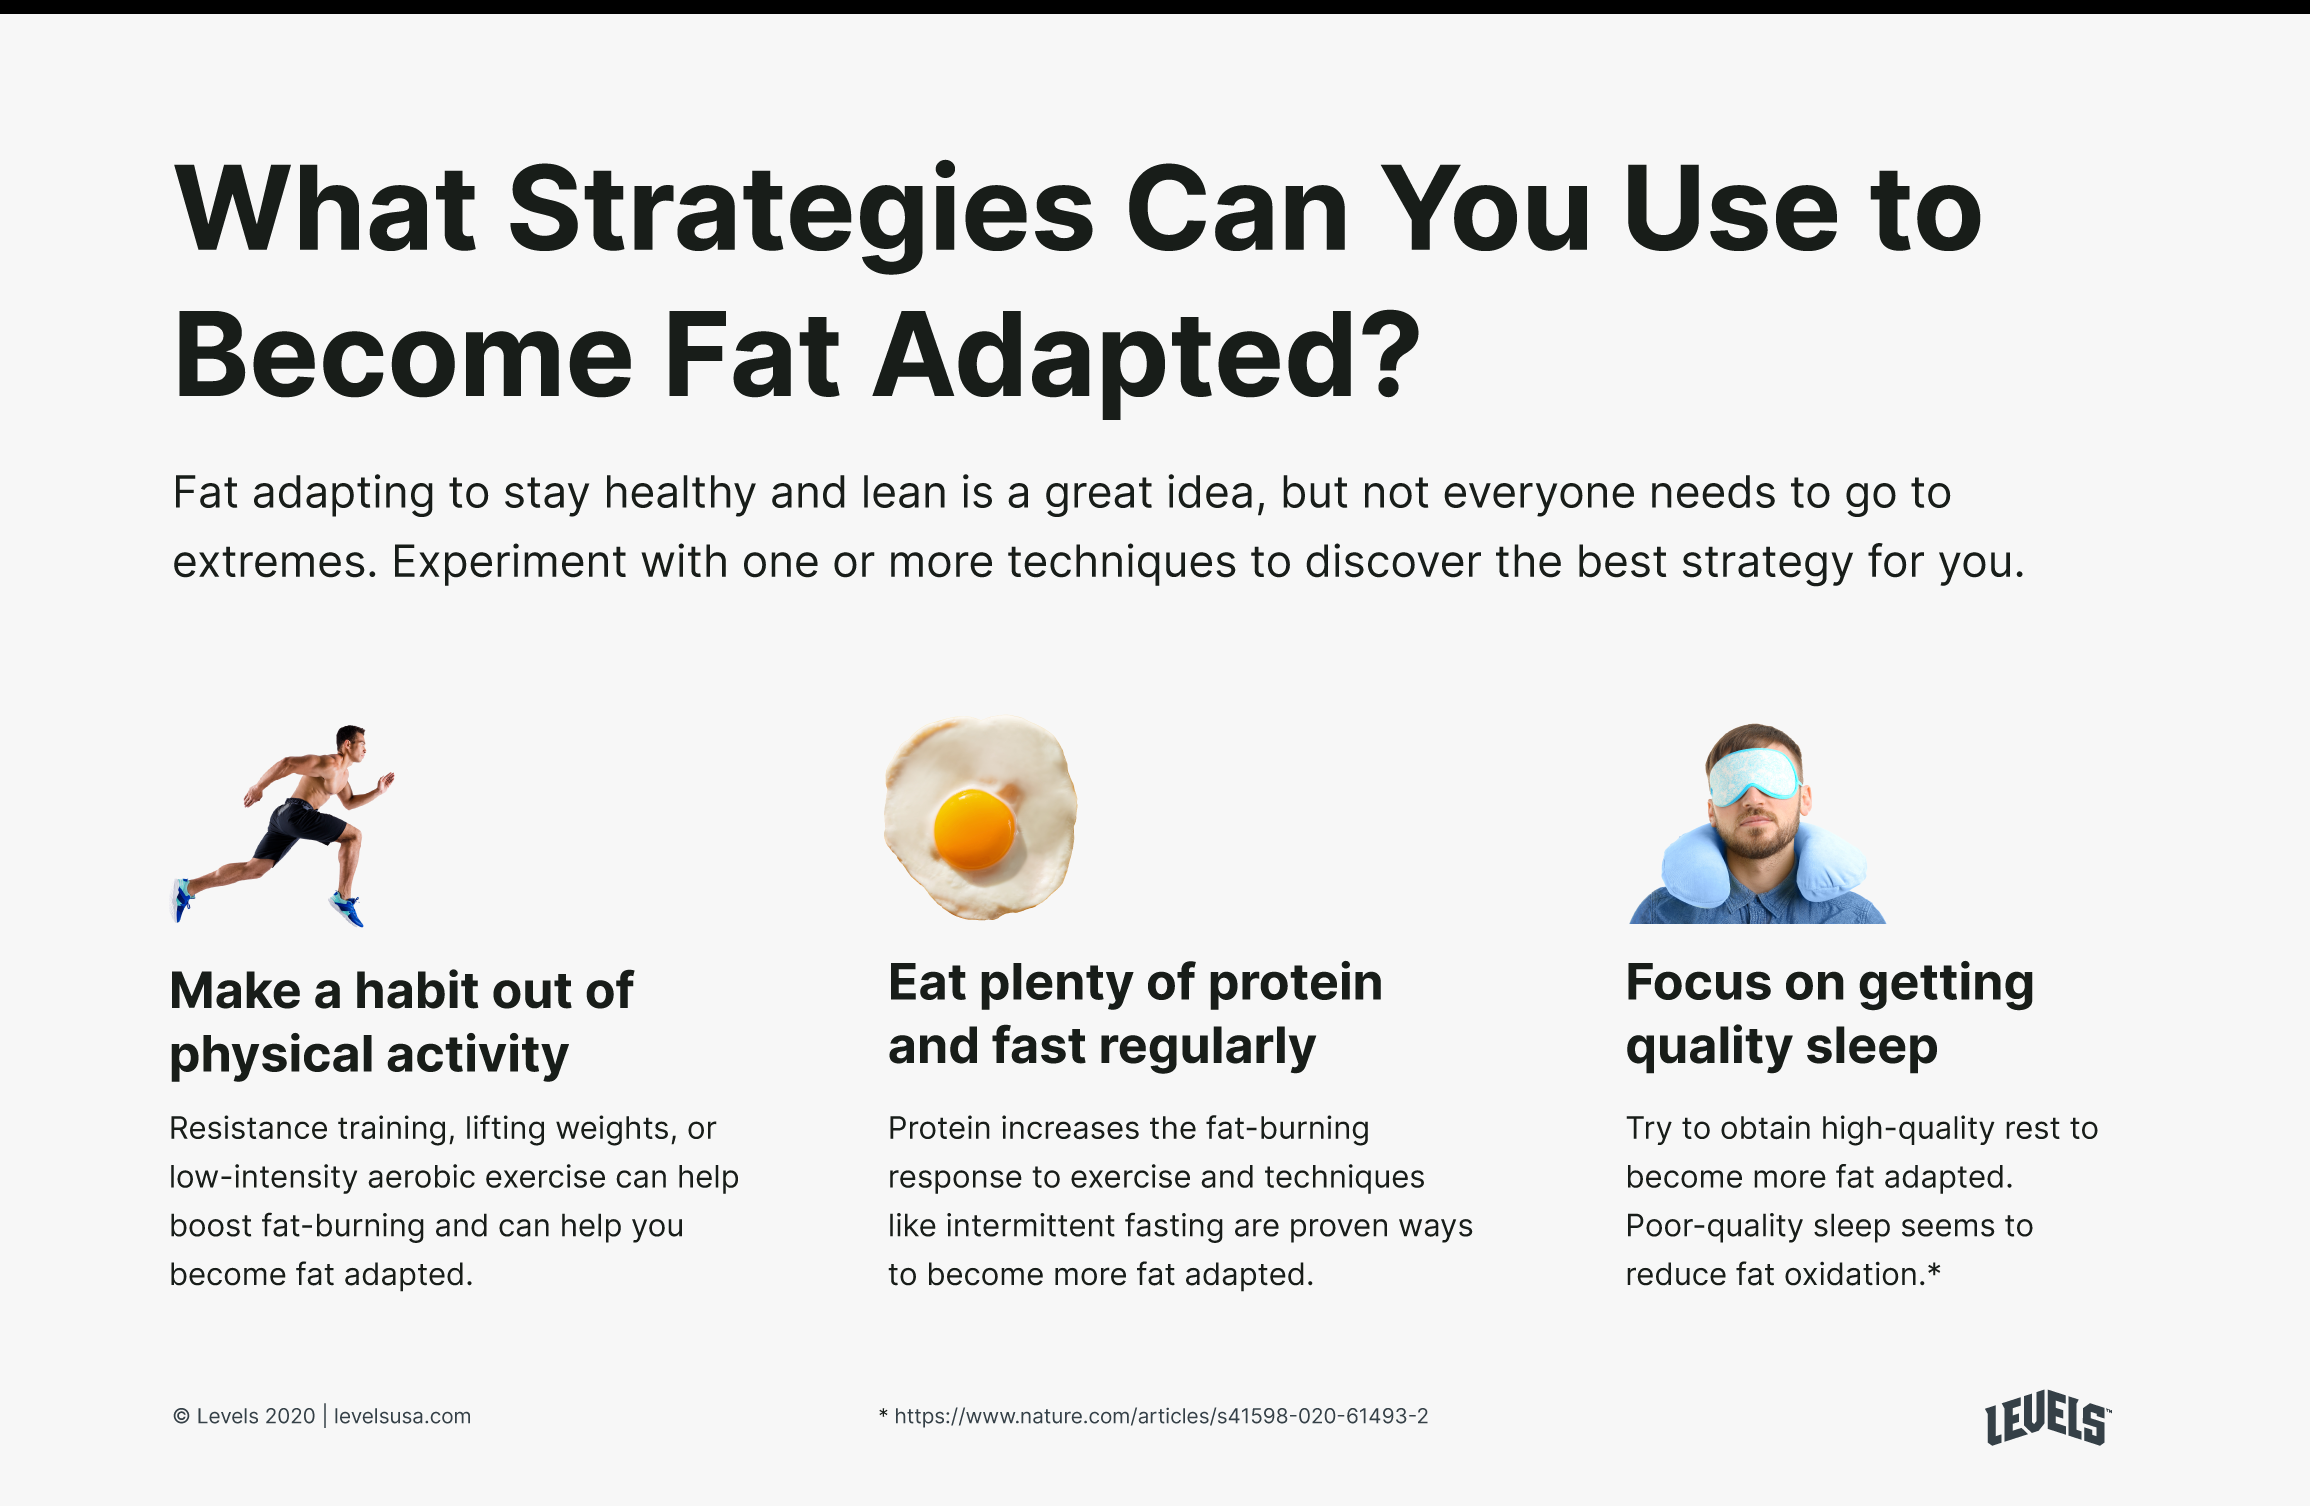 What Strategies Can You Use to Become Fat Adapted - Infographic